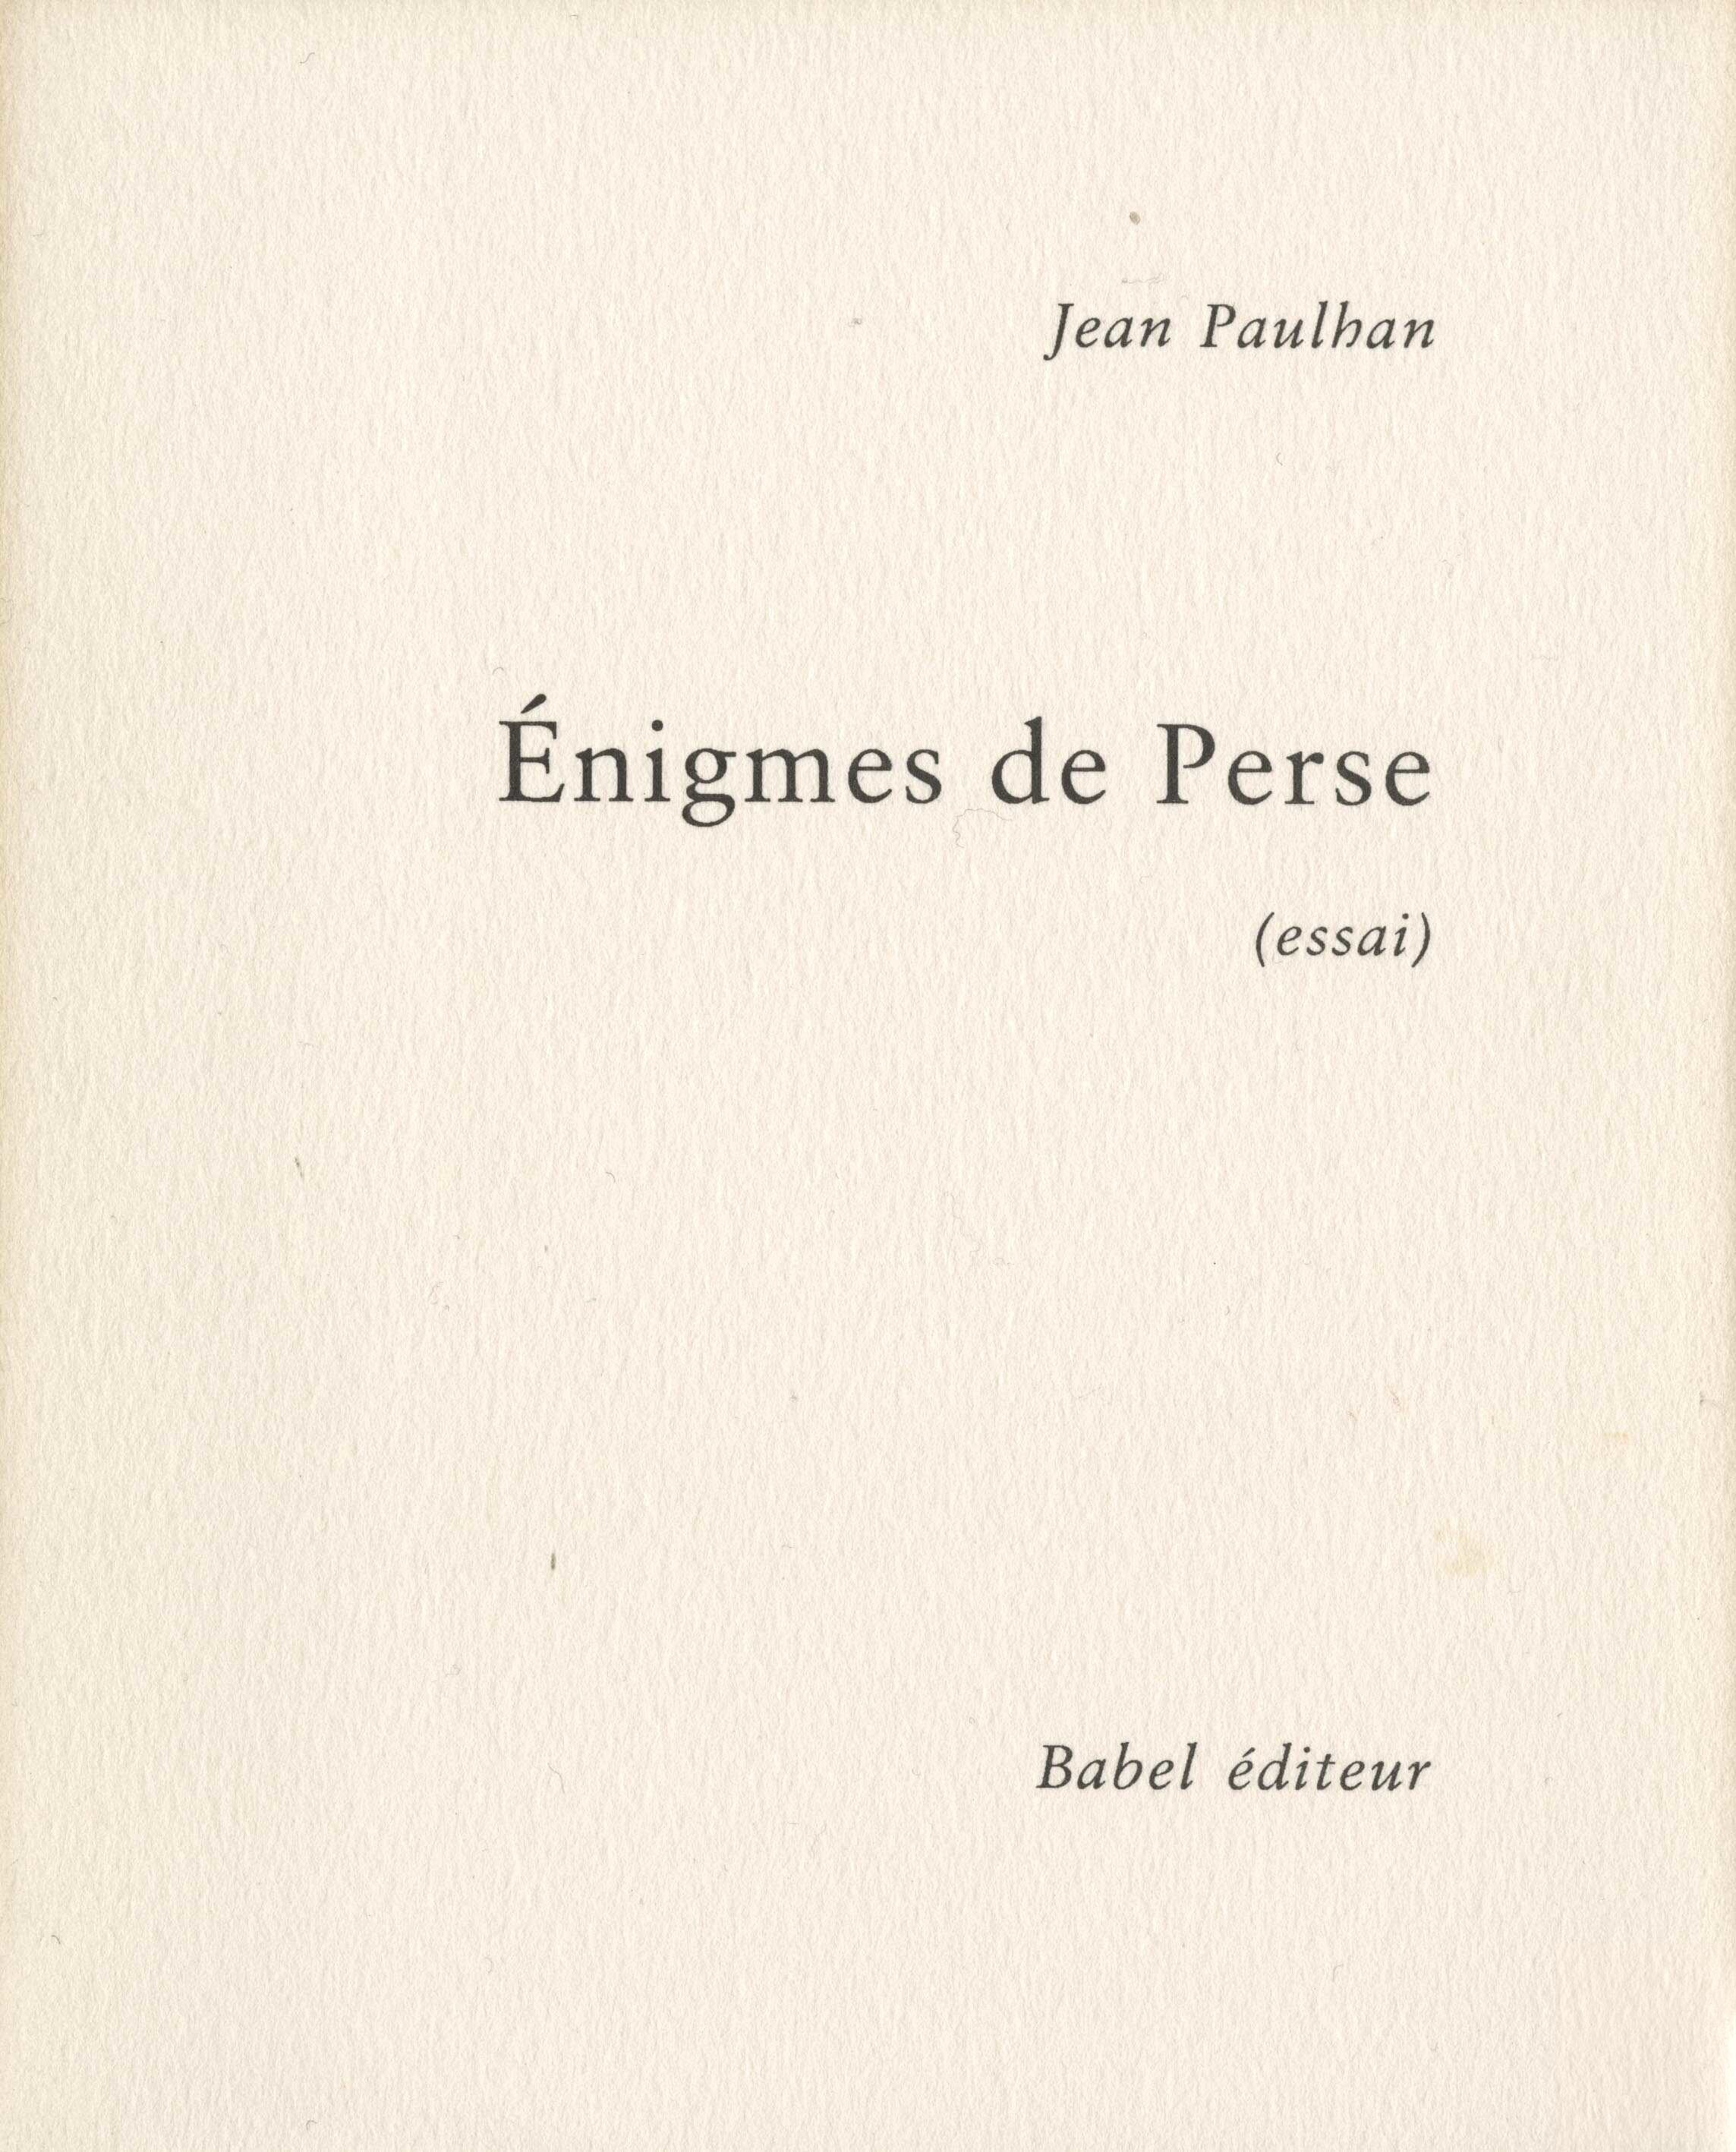 image for Babel éditeur